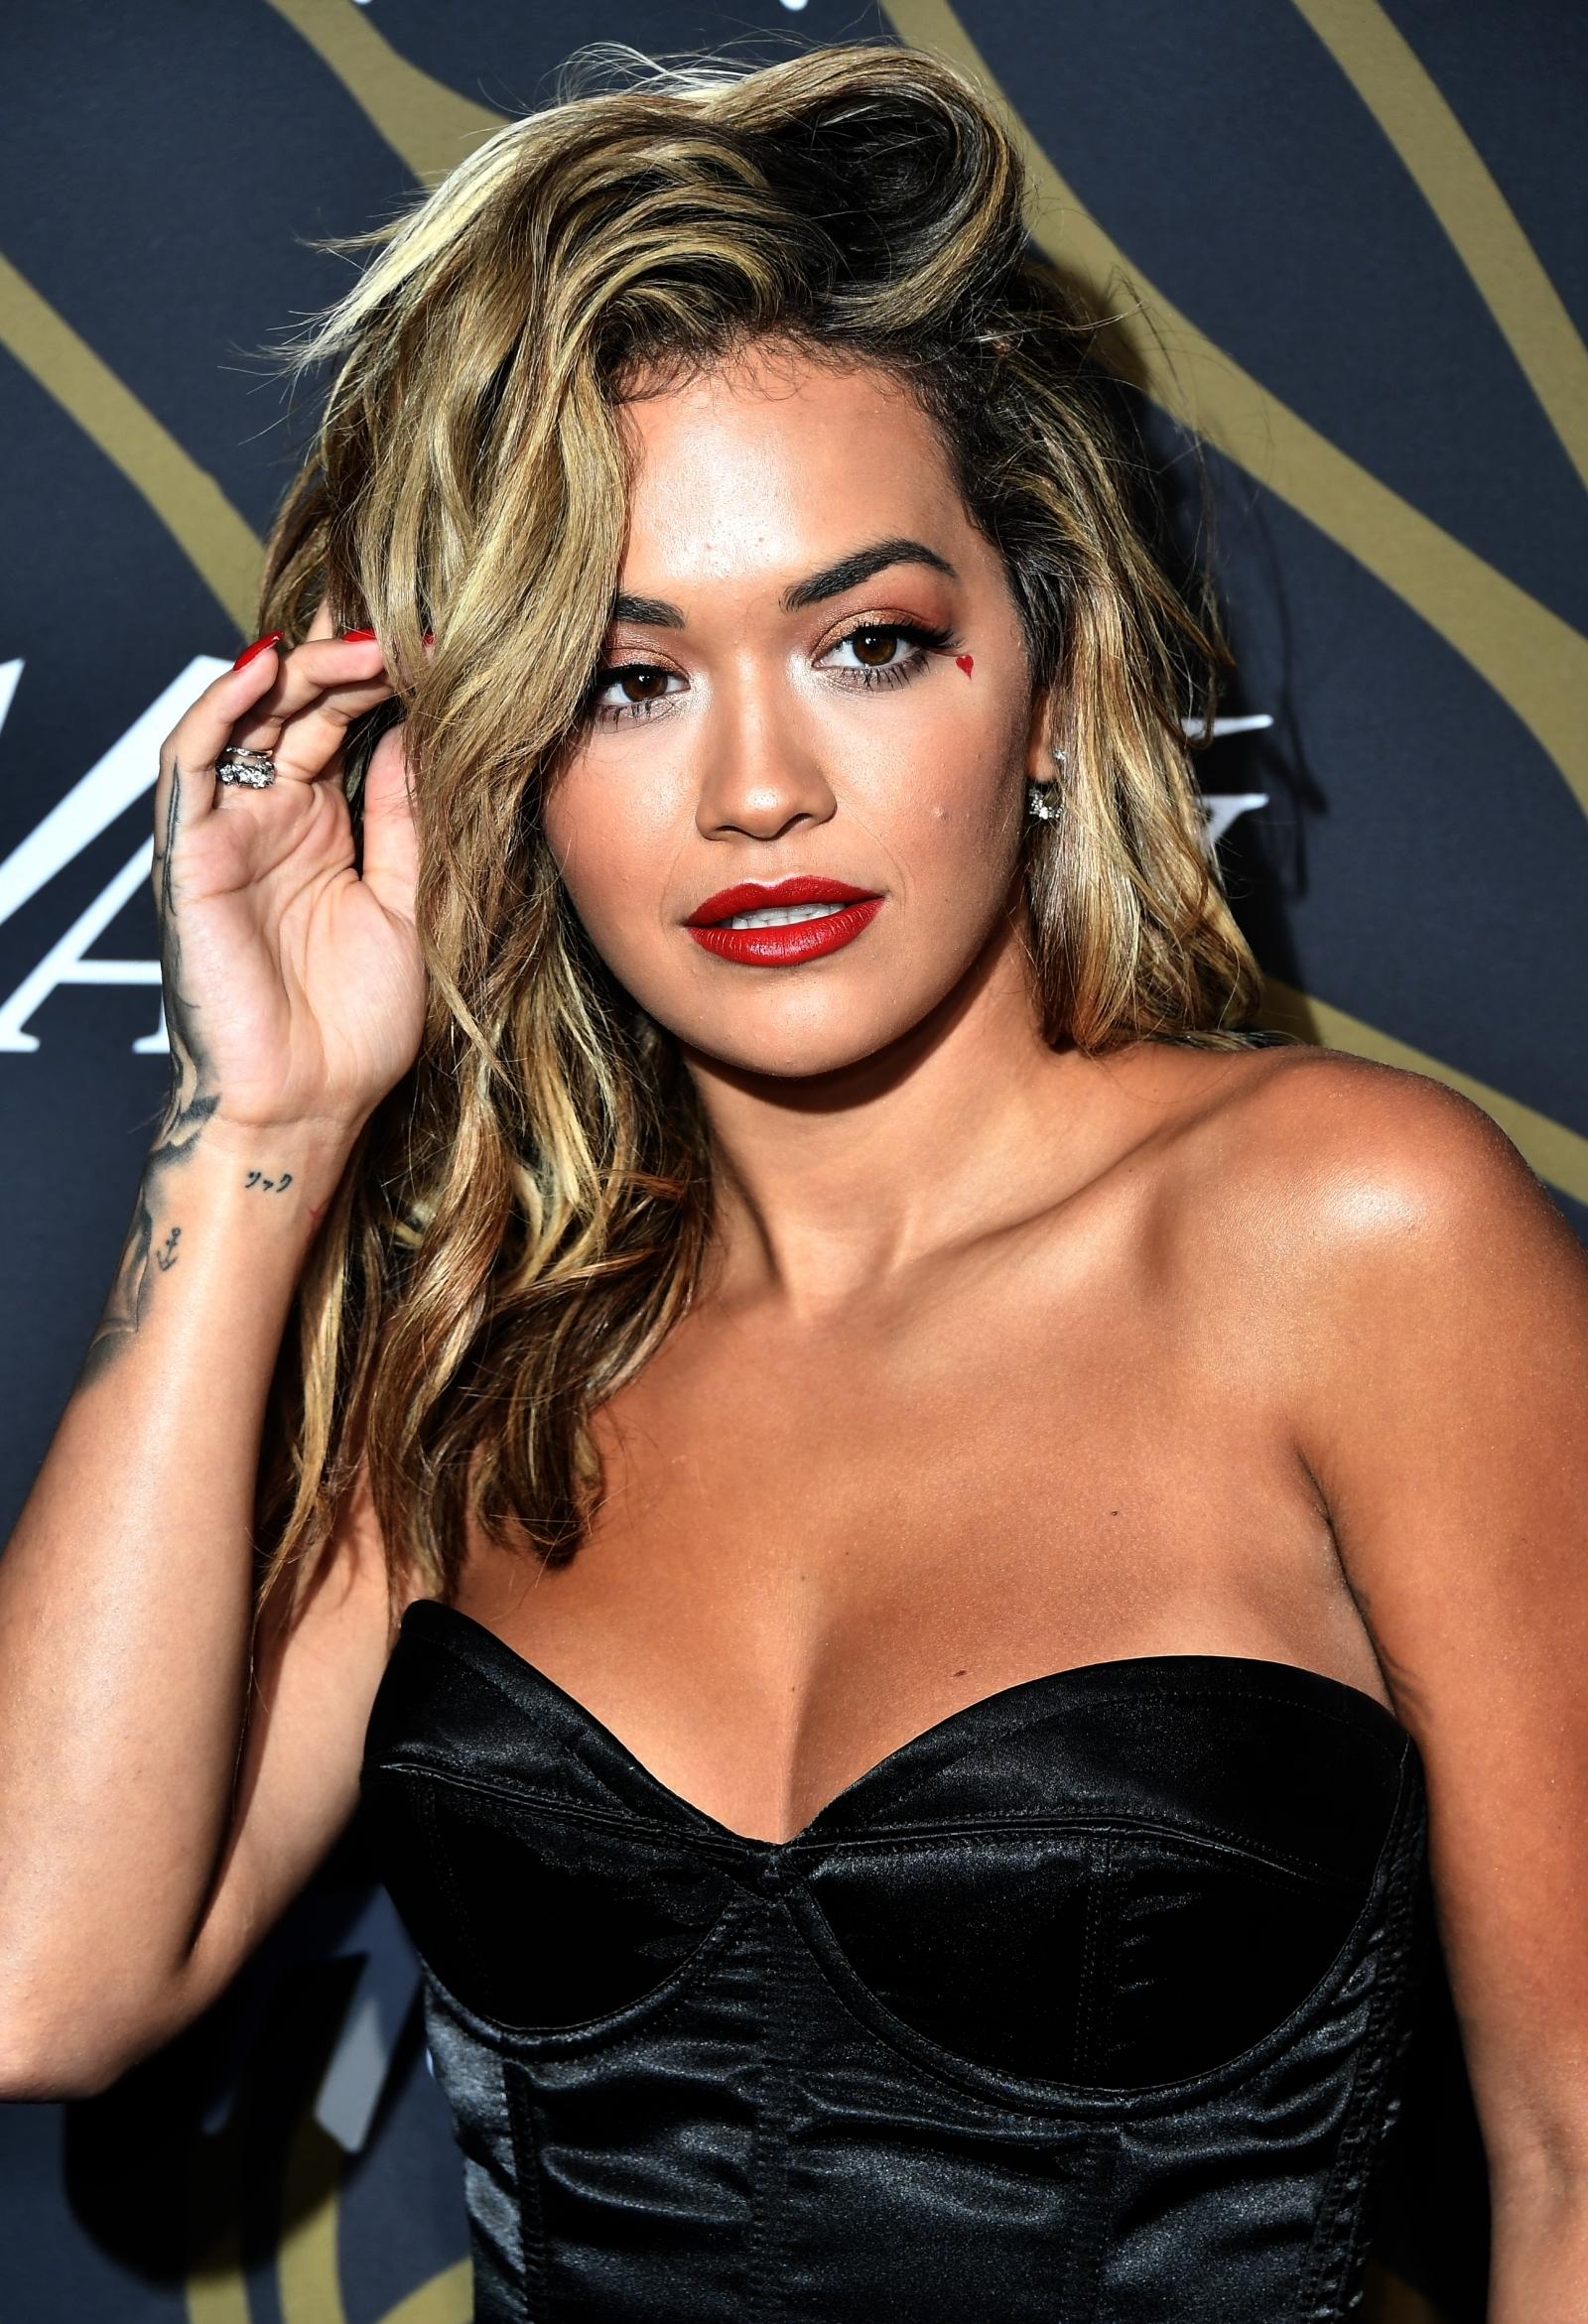 Good Lawd Braless Rita Ora Exposes Cleavage In Skimpy